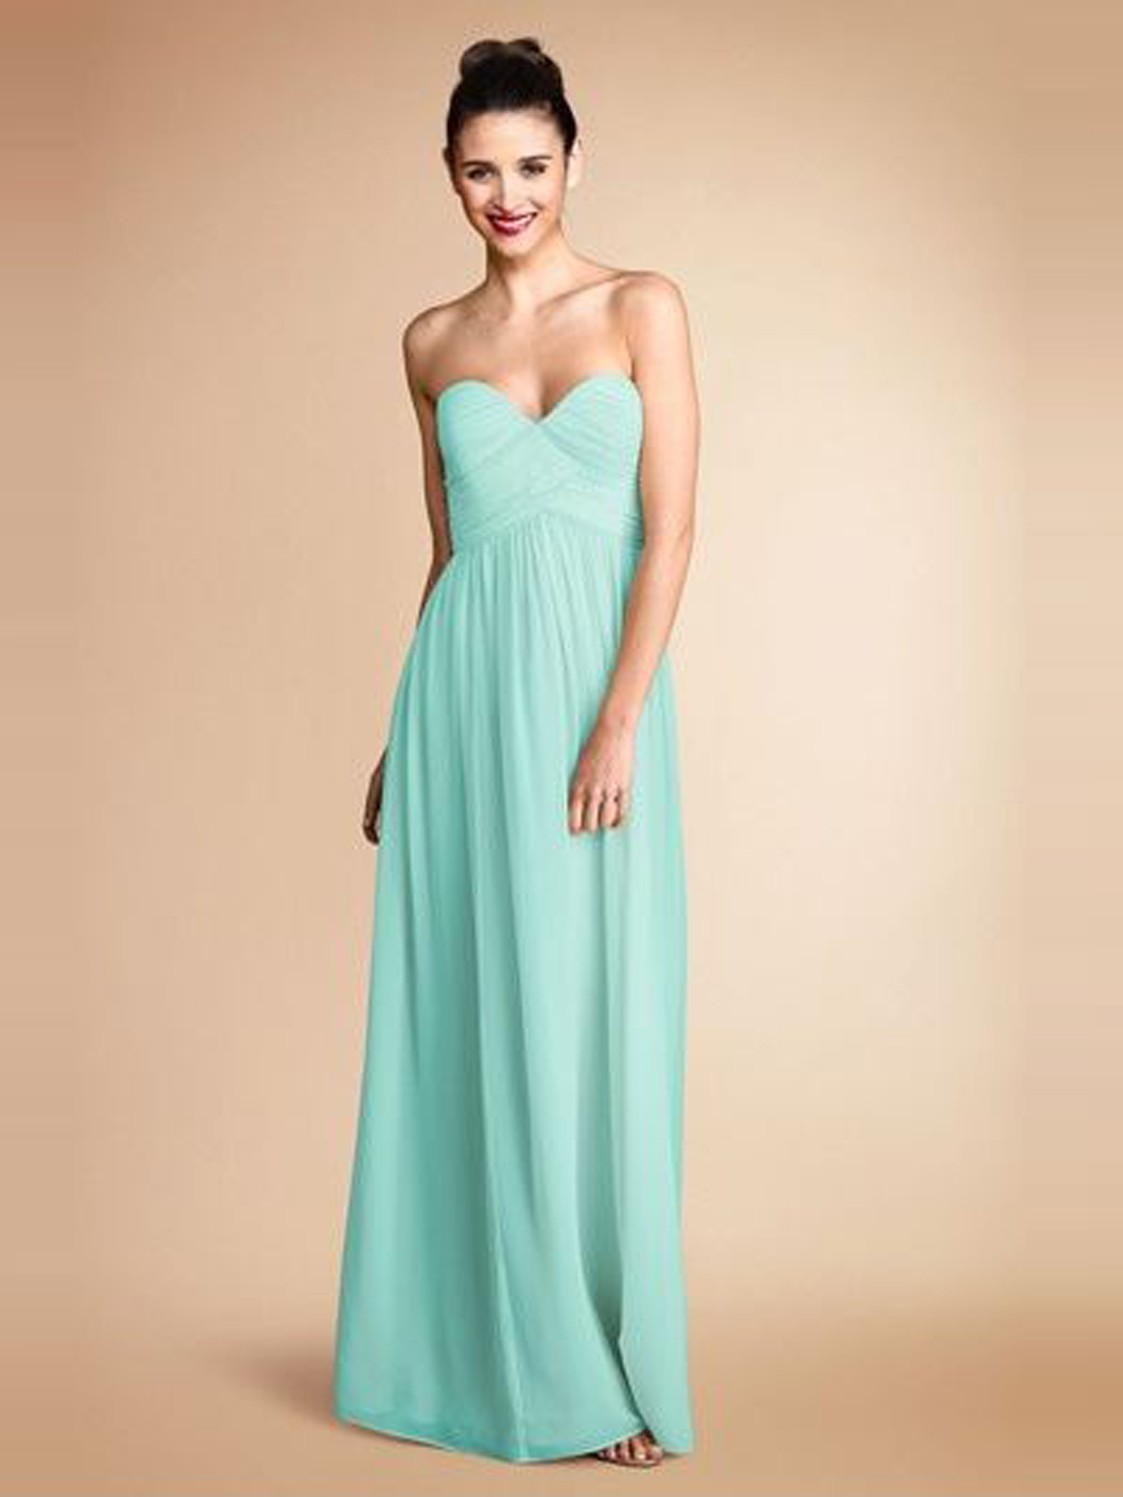 Chiffon bridesmaid dresses dressed up girl chiffon bridesmaid dresses ombrellifo Image collections